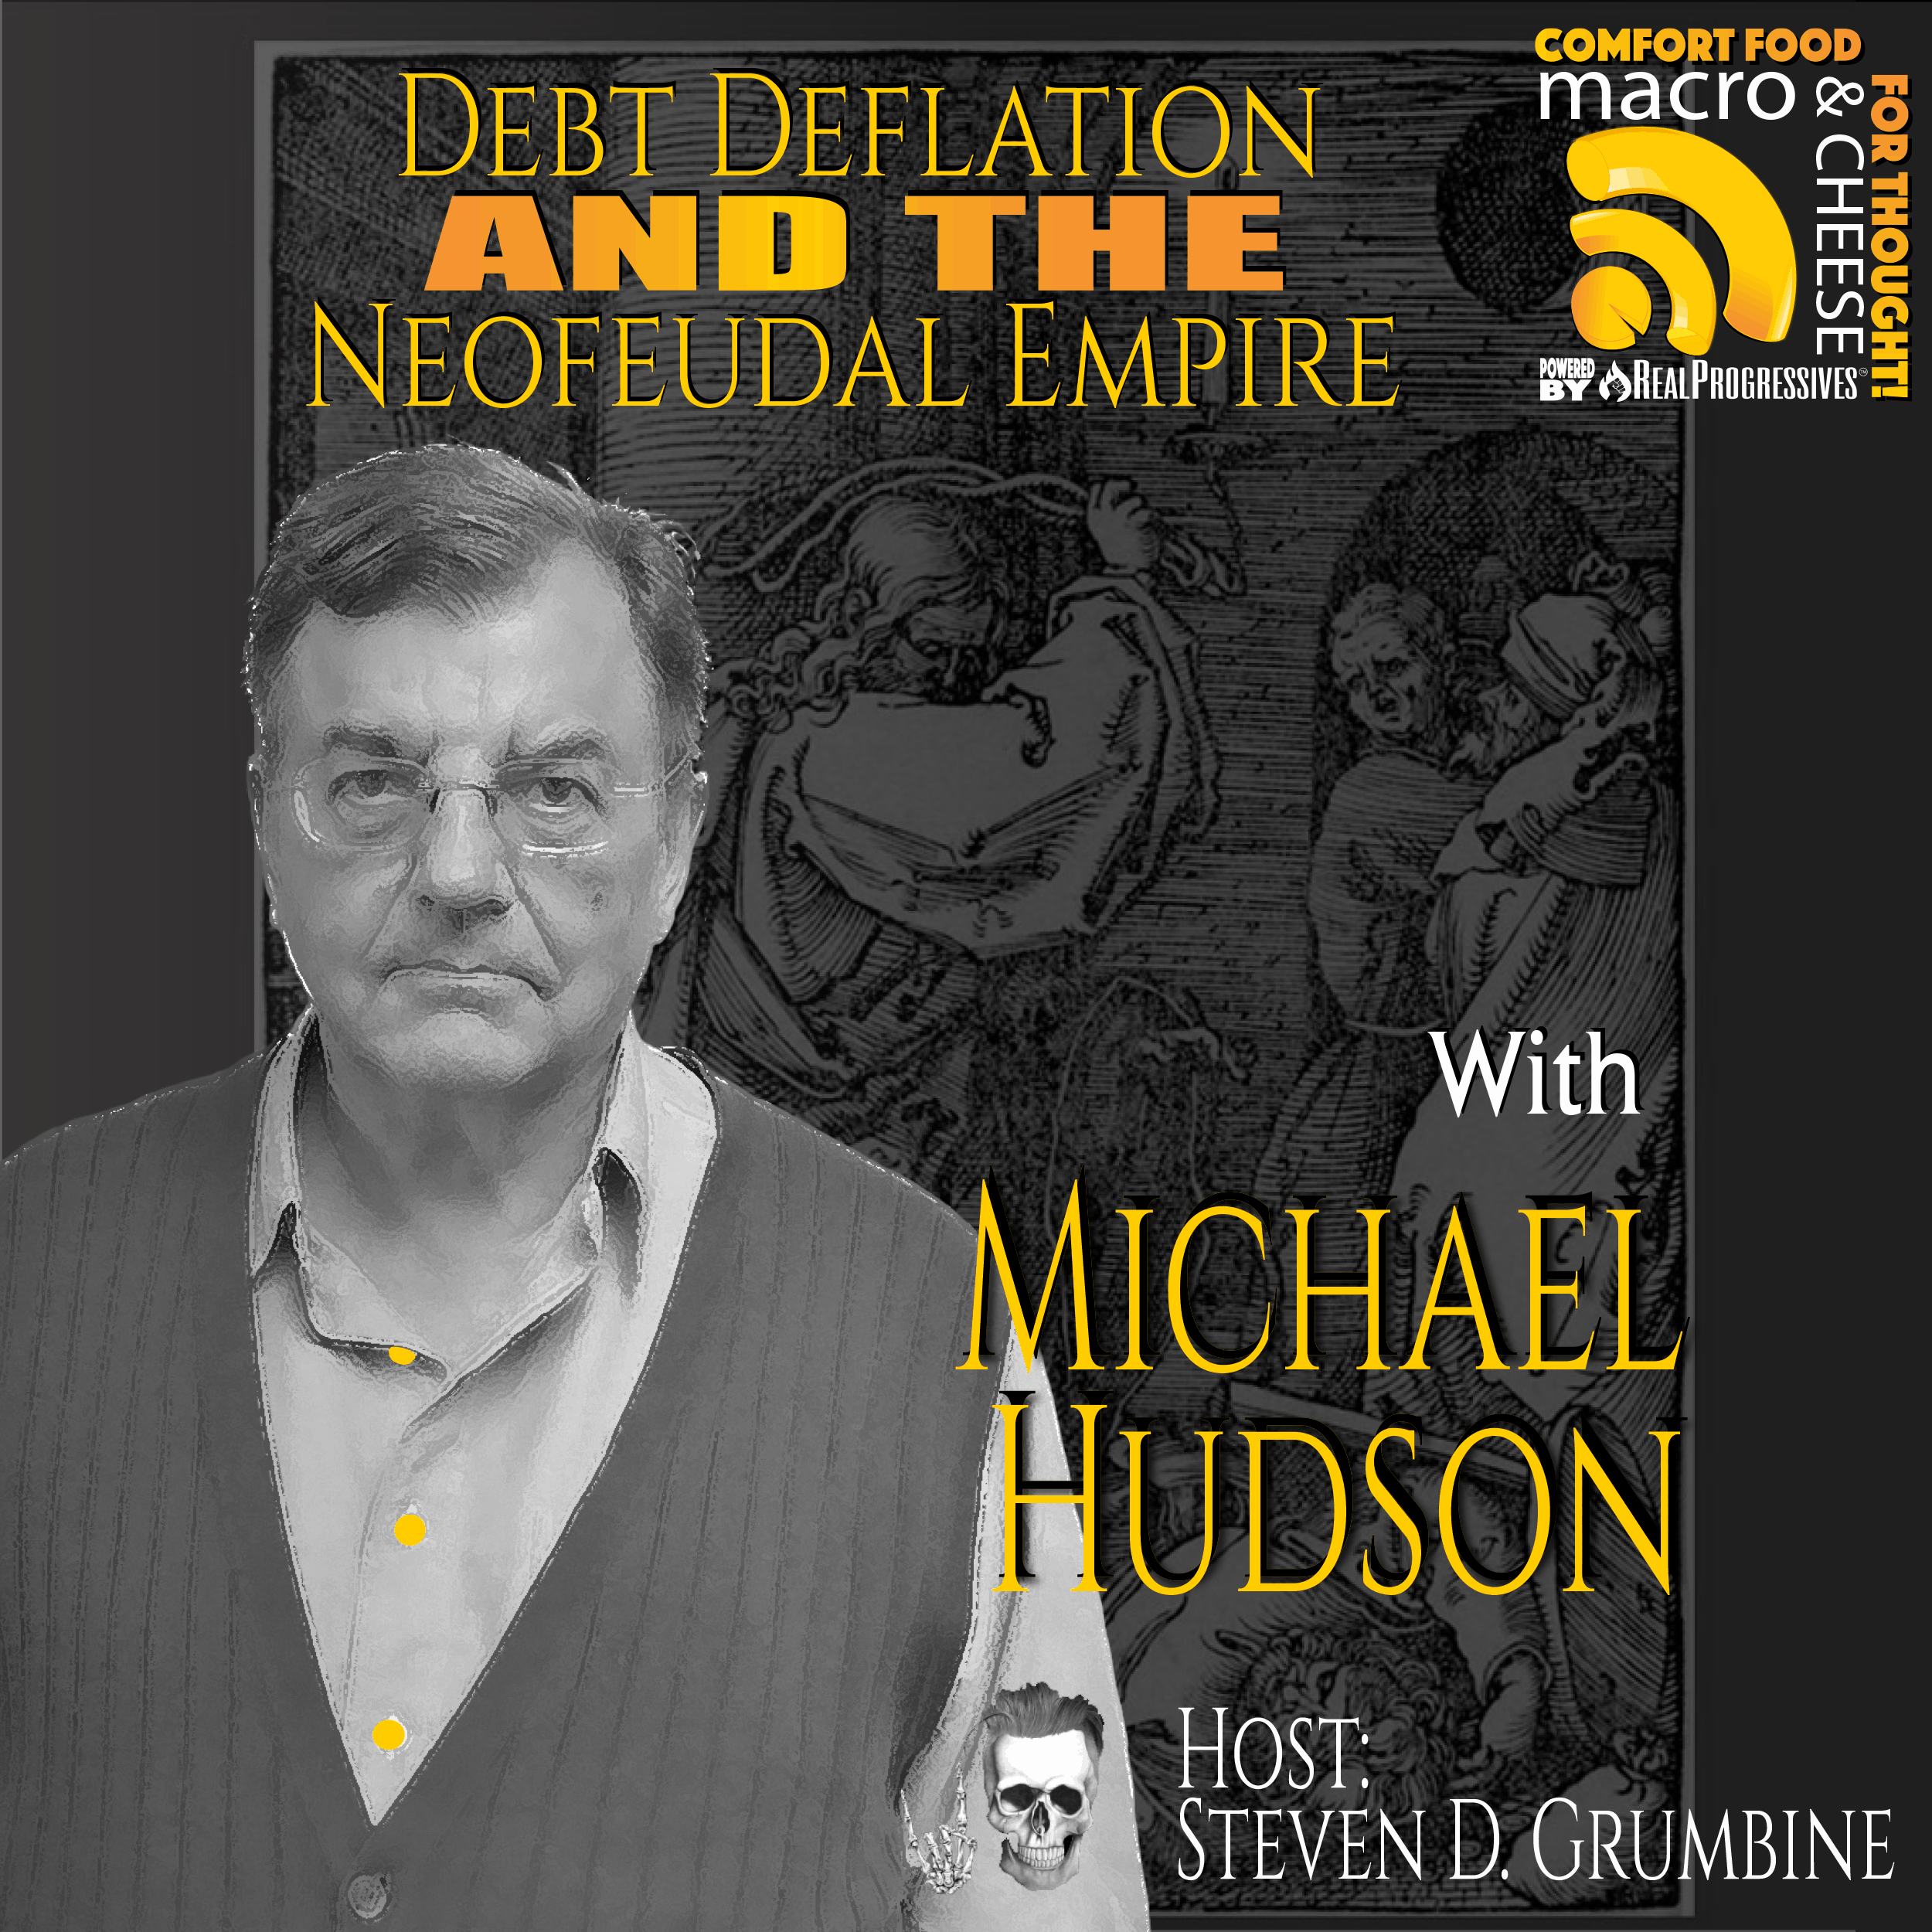 Episode 88 – Debt Deflation and the Neofeudal Empire with Michael Hudson